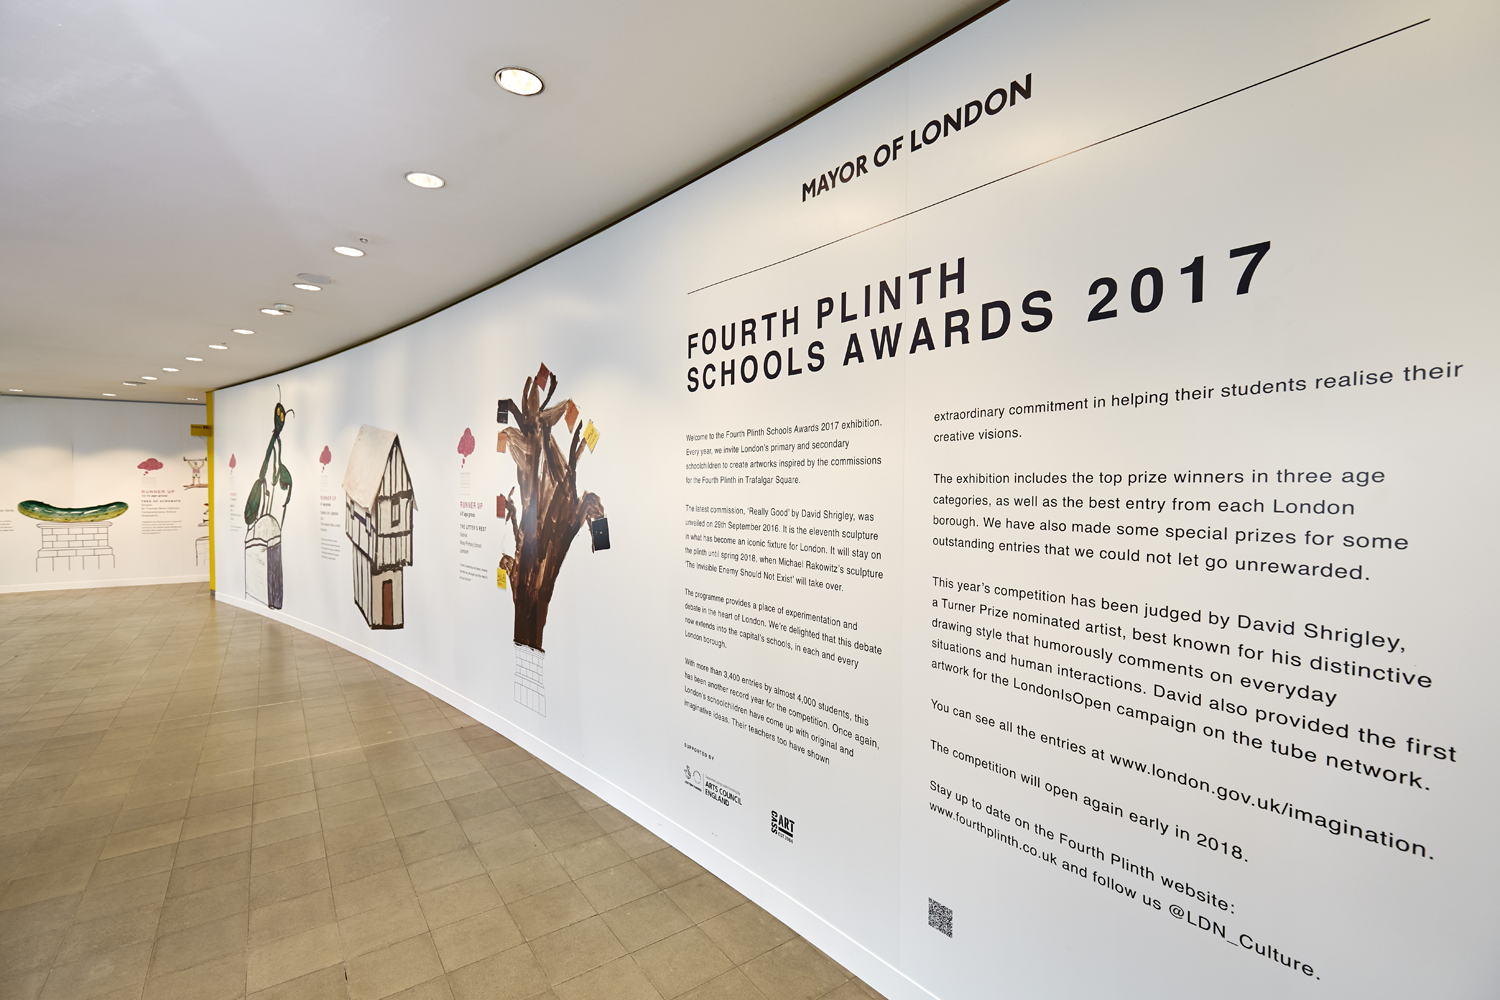 Fourth Plinth Schools Award 2017    Find out more...